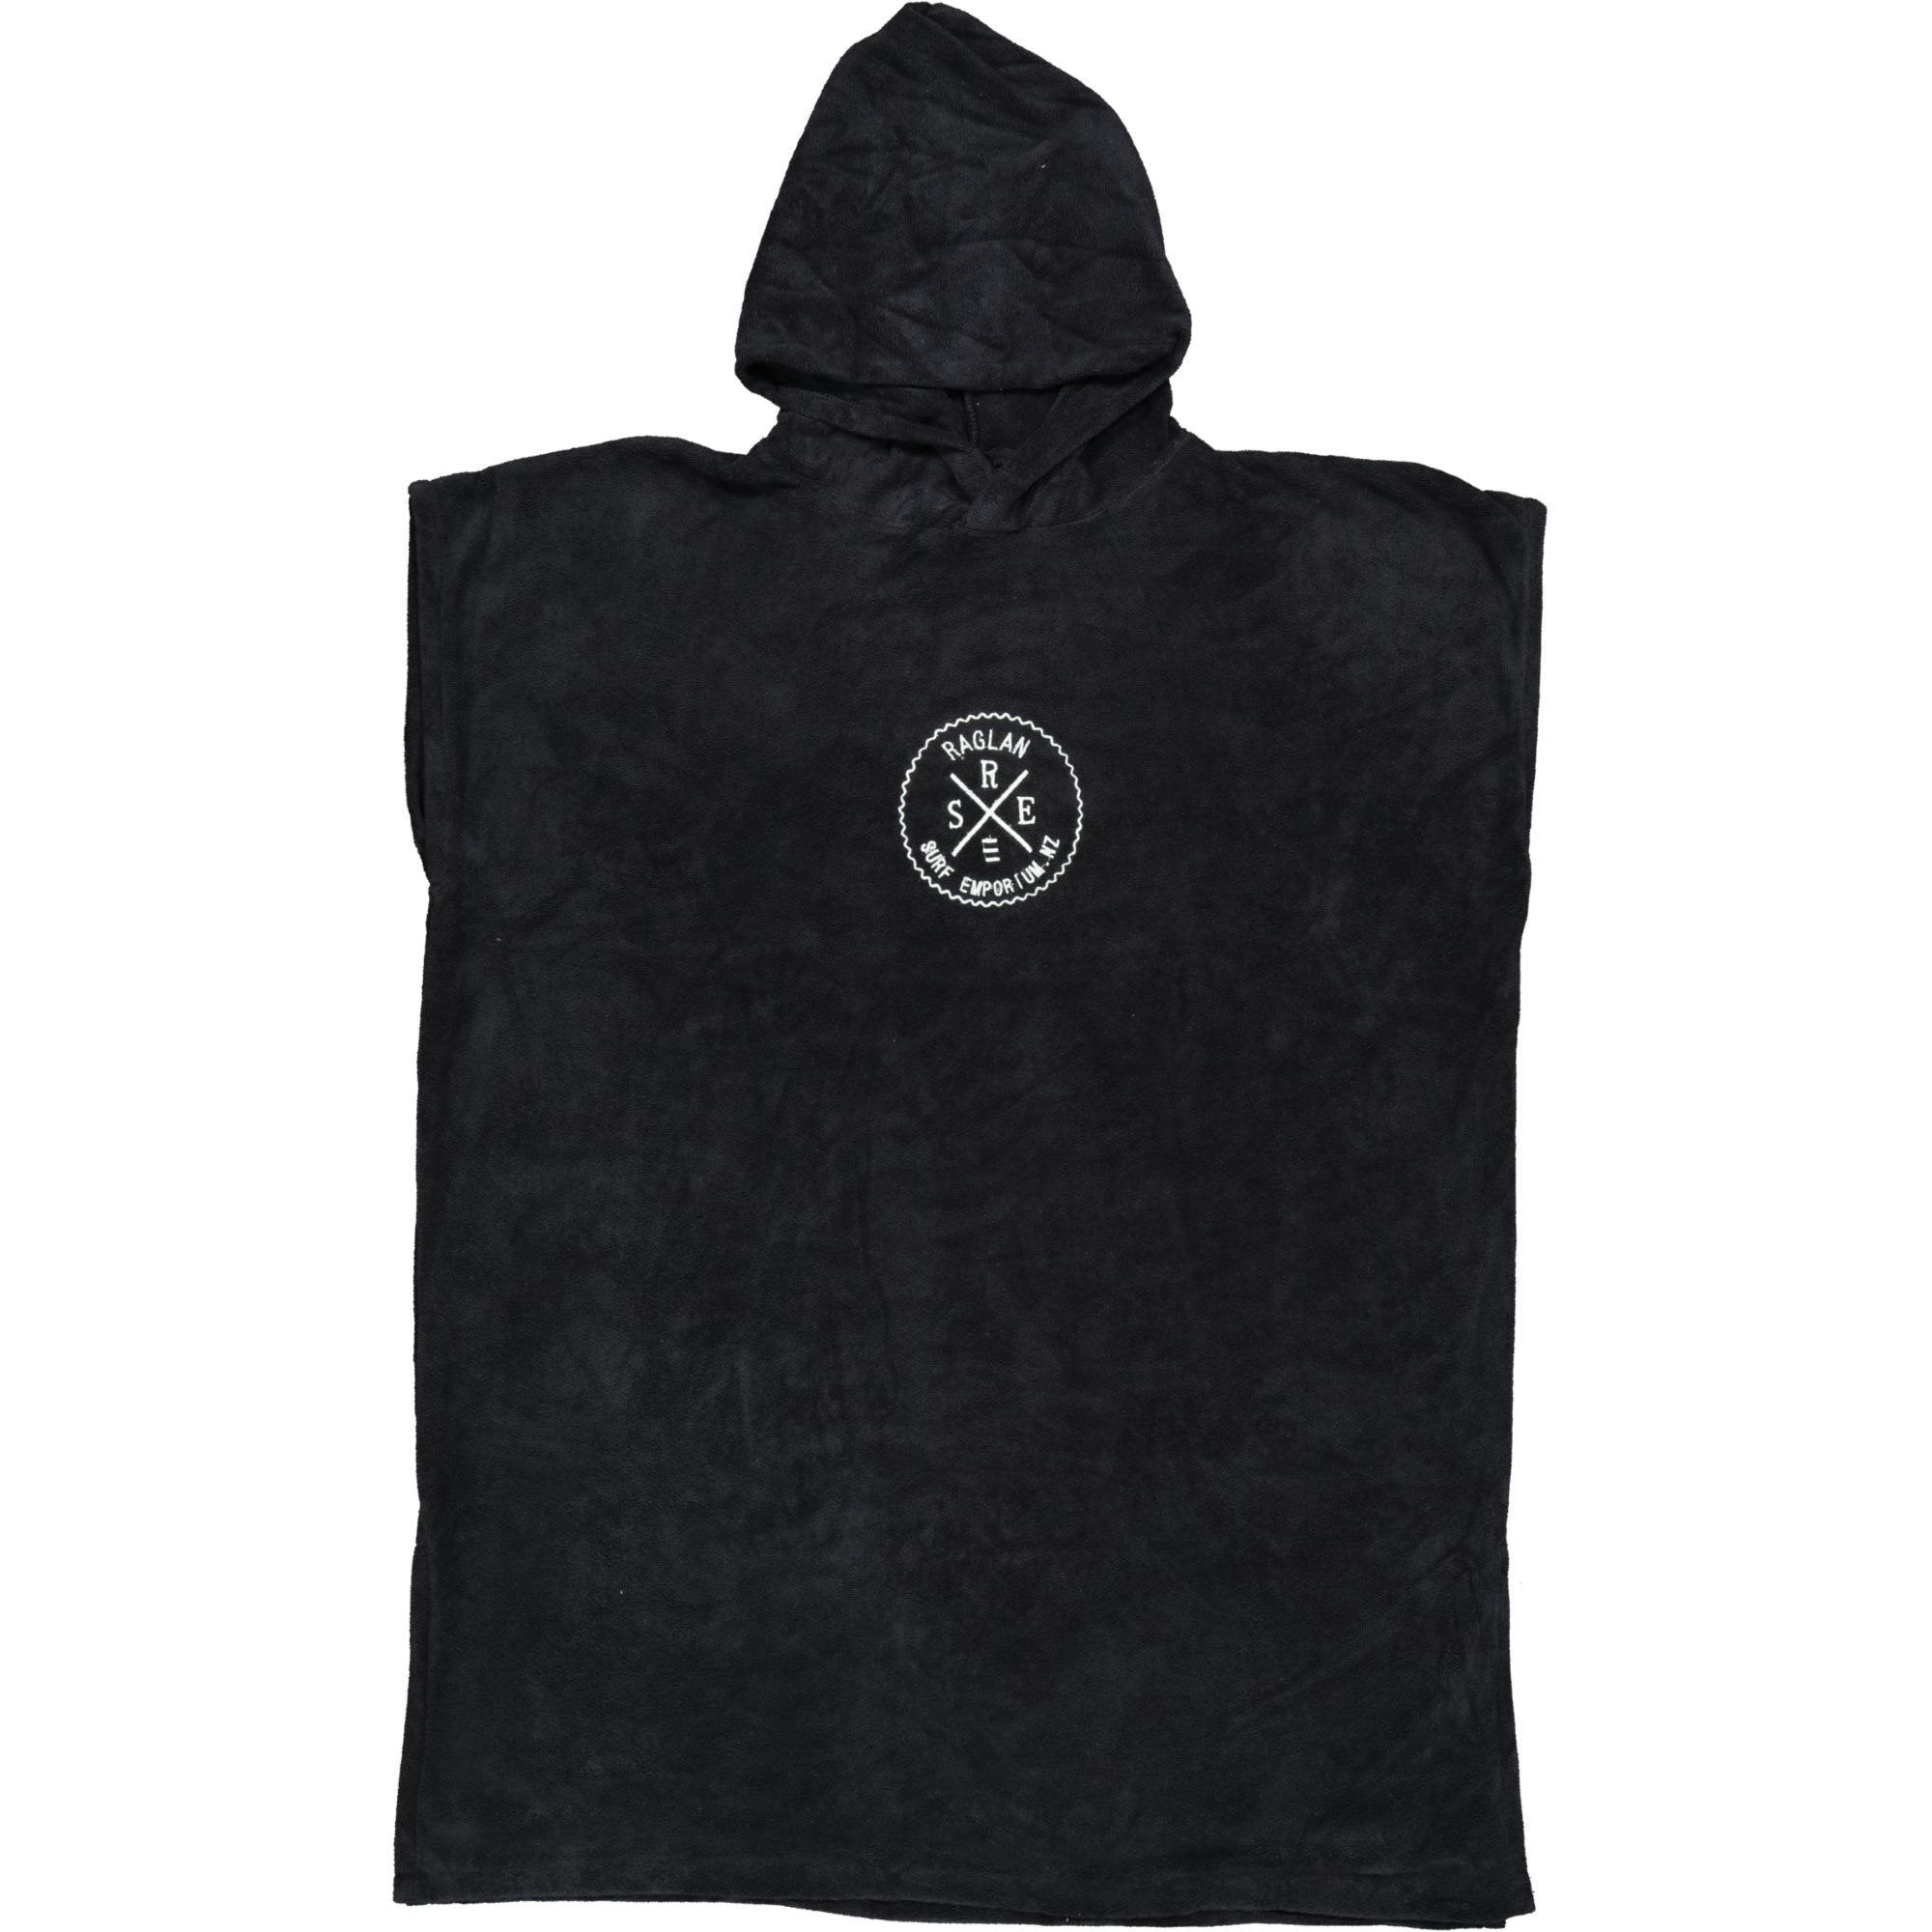 RSE Hooded Towel Black